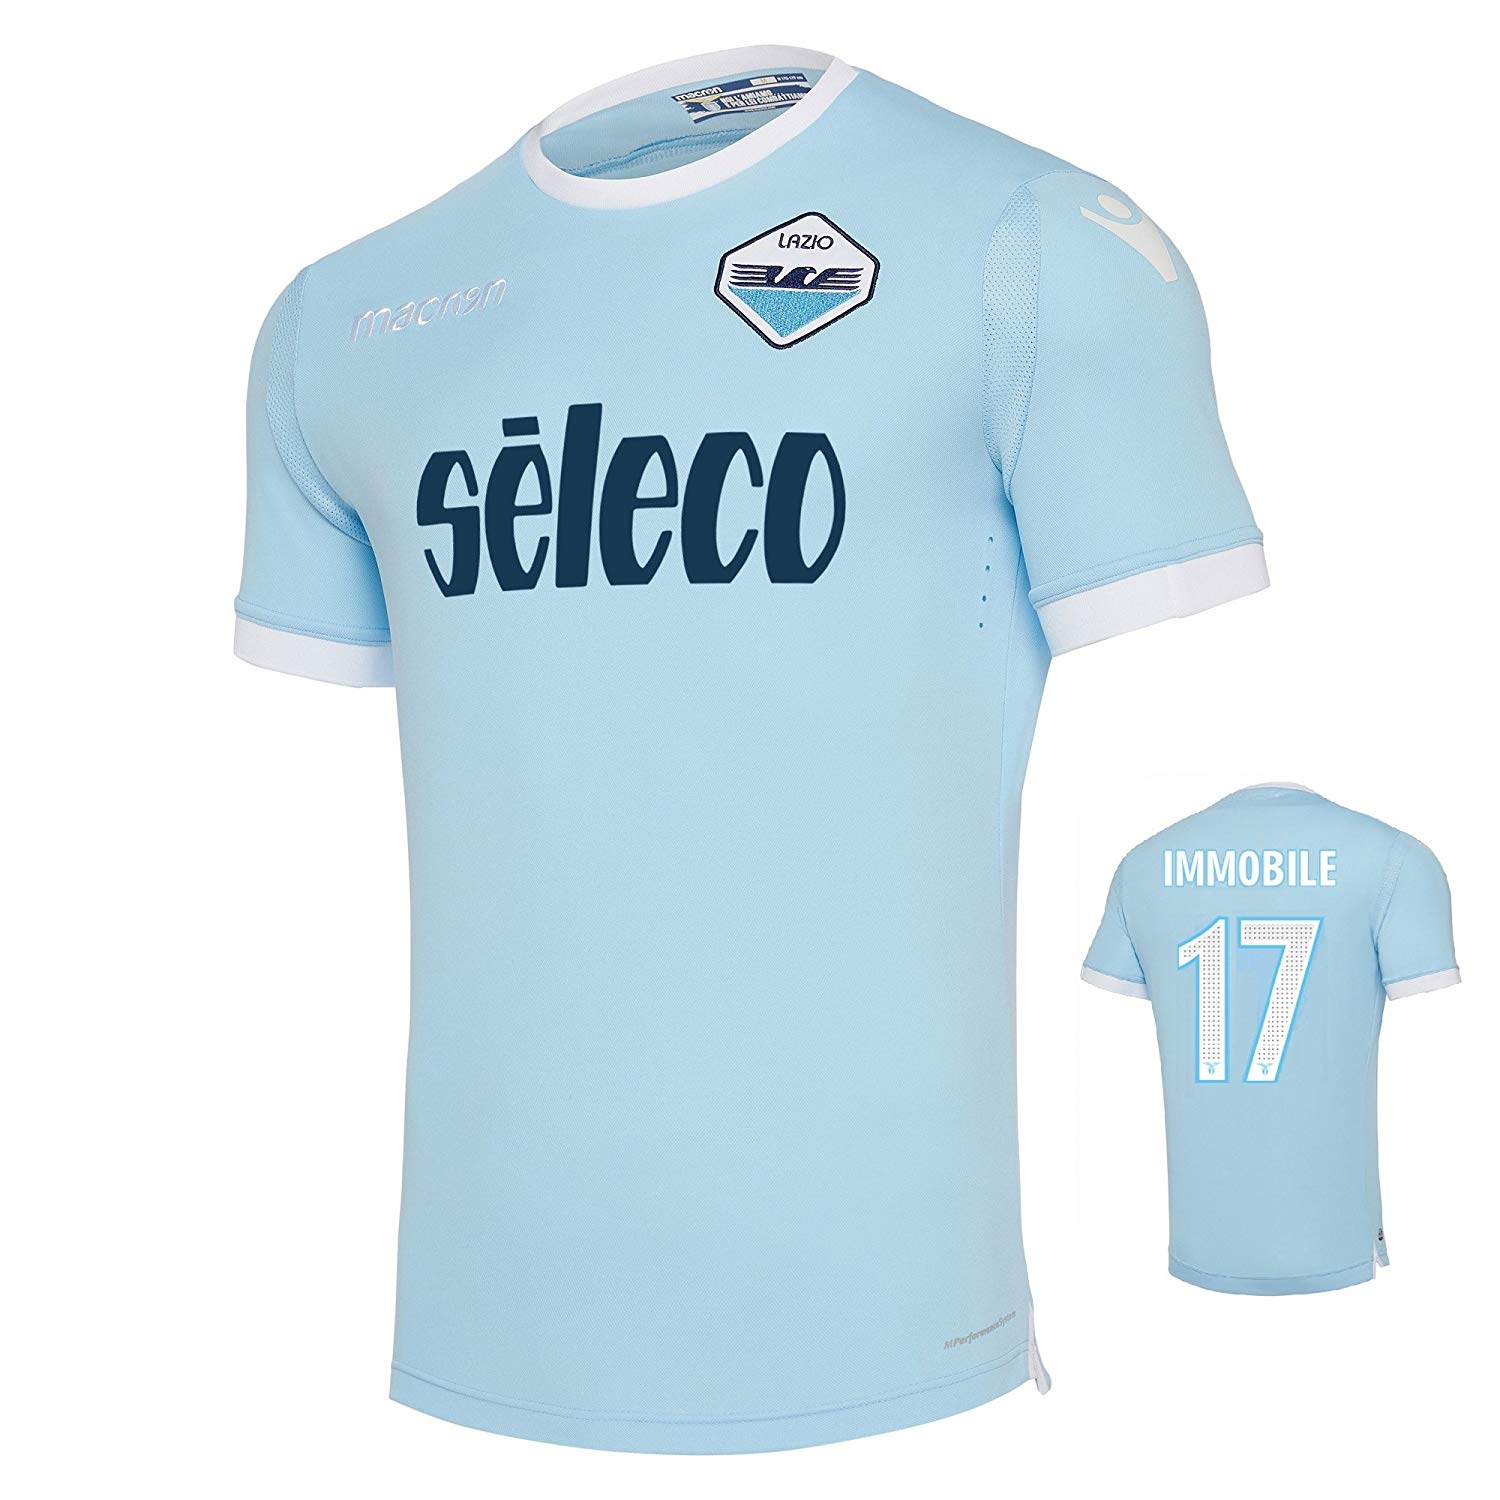 ... KLOSE football shirt kit uniform away set.   15.98. SS Lazio Authentic  Home Immobile Jersey 2017 18 Macron (Original Printing) 7240287d4